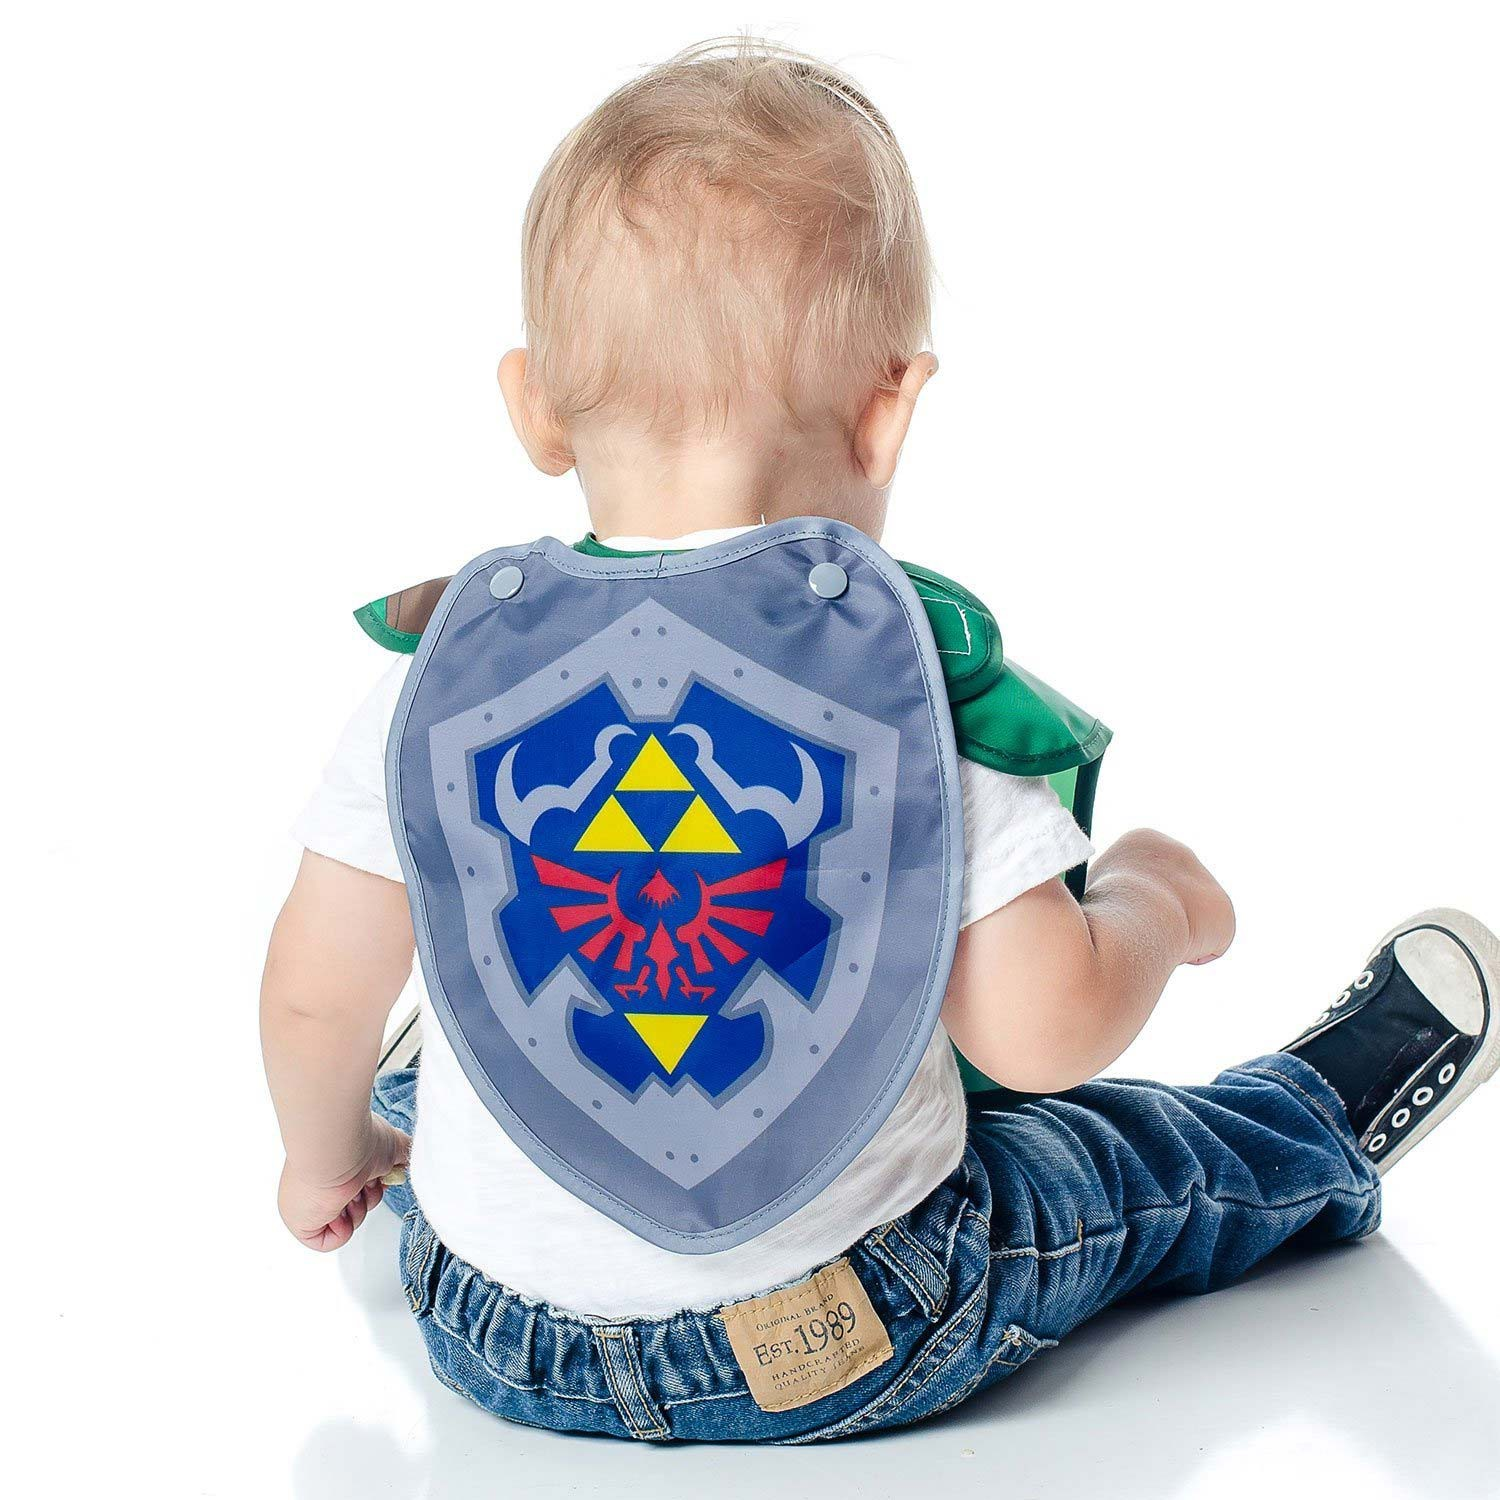 Legend Of Zelda Link Costume Sleeved Bib